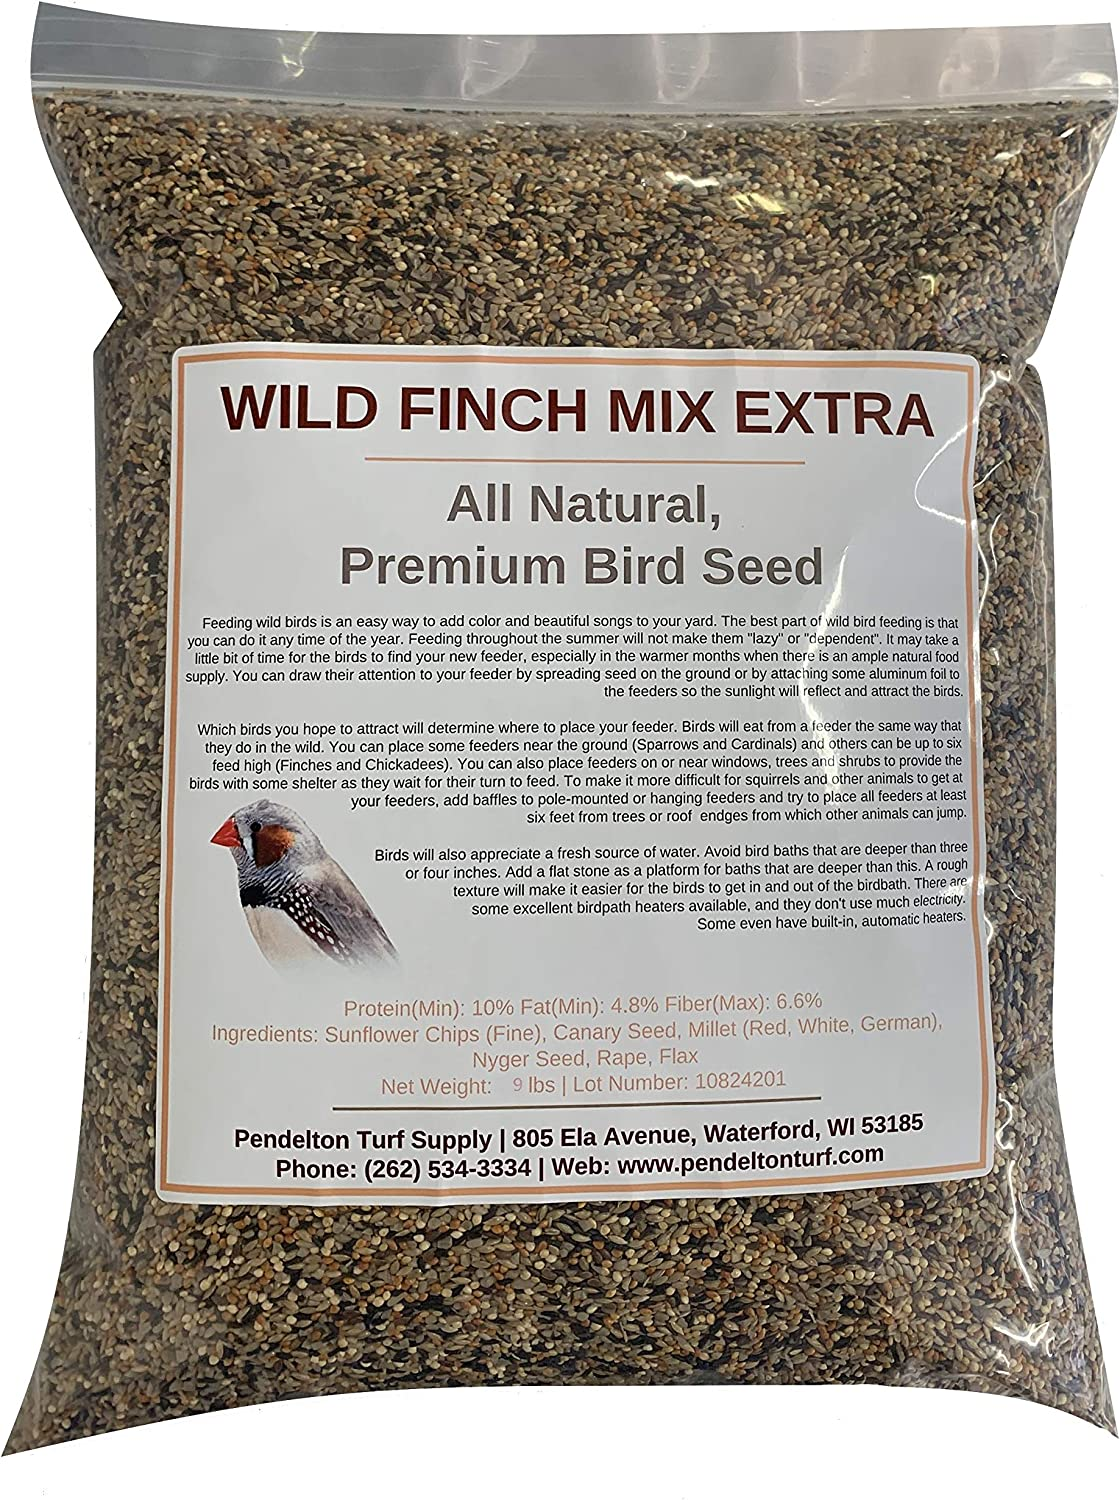 Pendelton Turf Supply Wild Finch Mix Extra | All-Natural, Premium Bird Seed (9 lbs Resealable Bag)